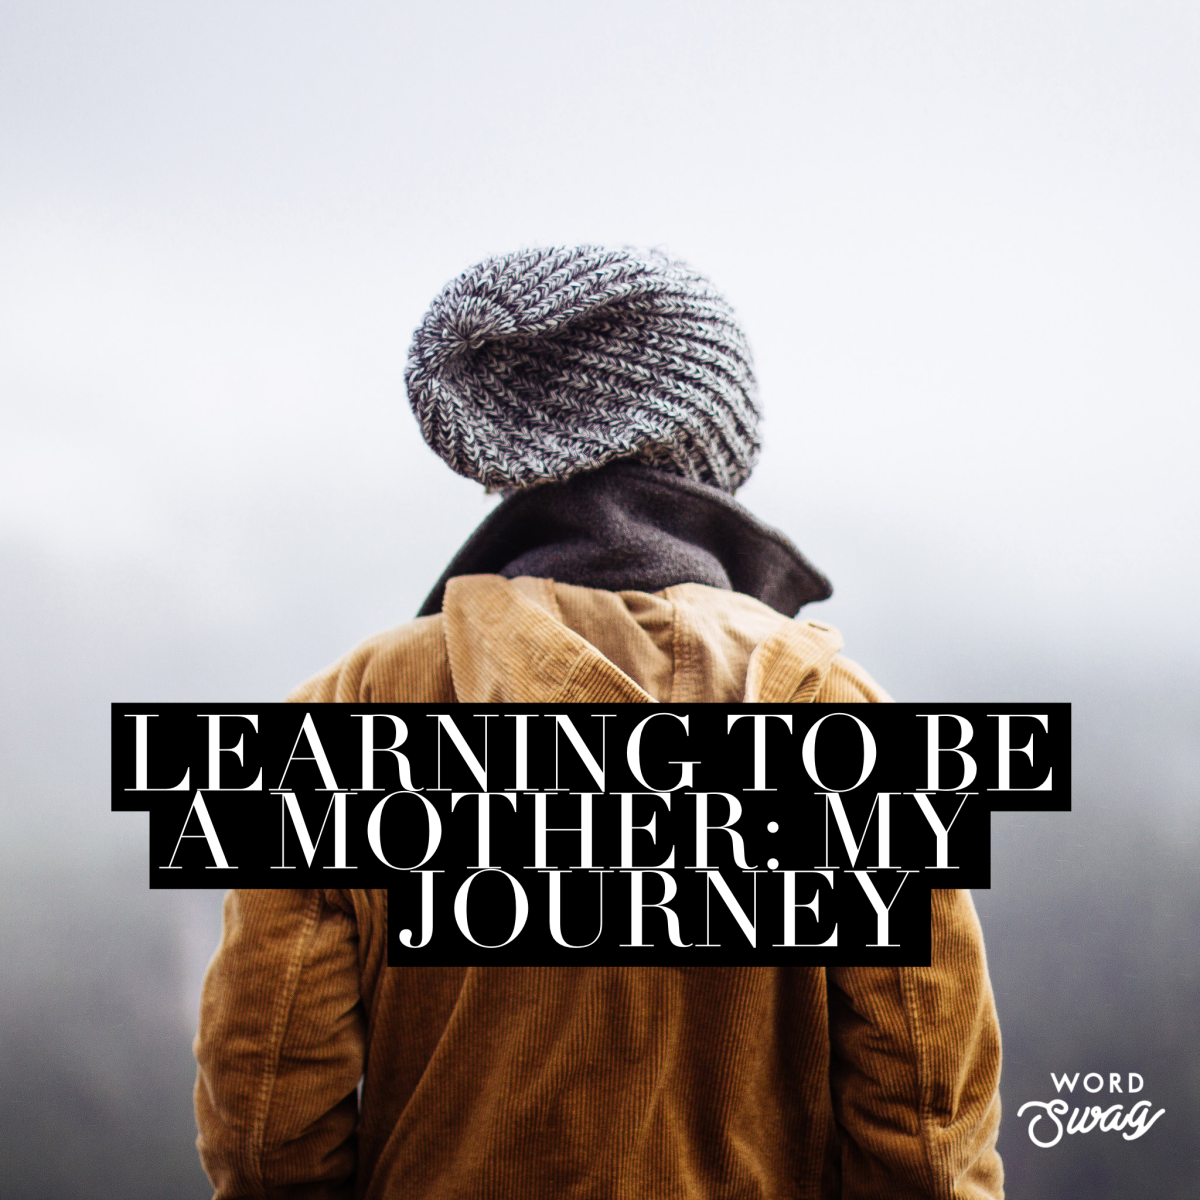 Learning to be a Mother: My Journey